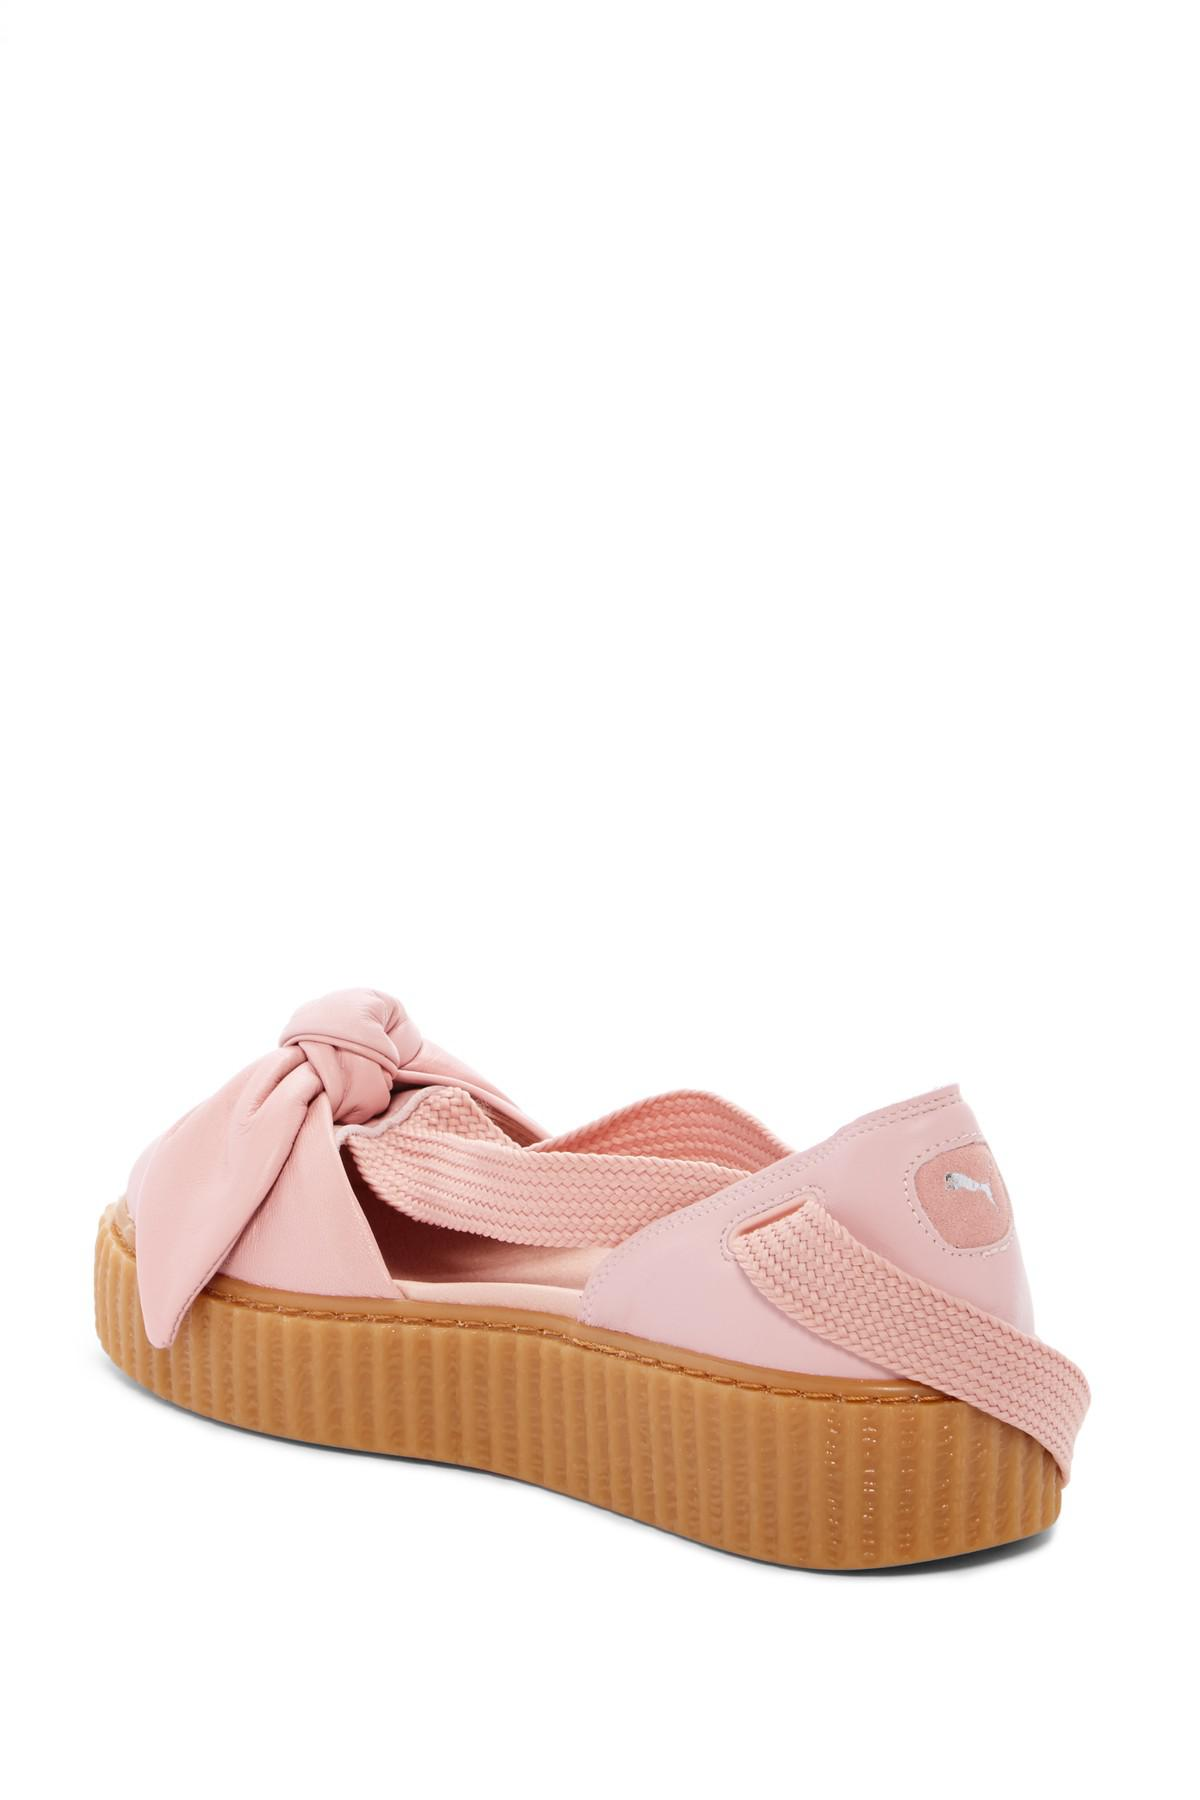 PUMA - Pink Fenty By Rihanna Bow Leather Creeper Sandal (women) - Lyst.  View fullscreen 0a3f062a4